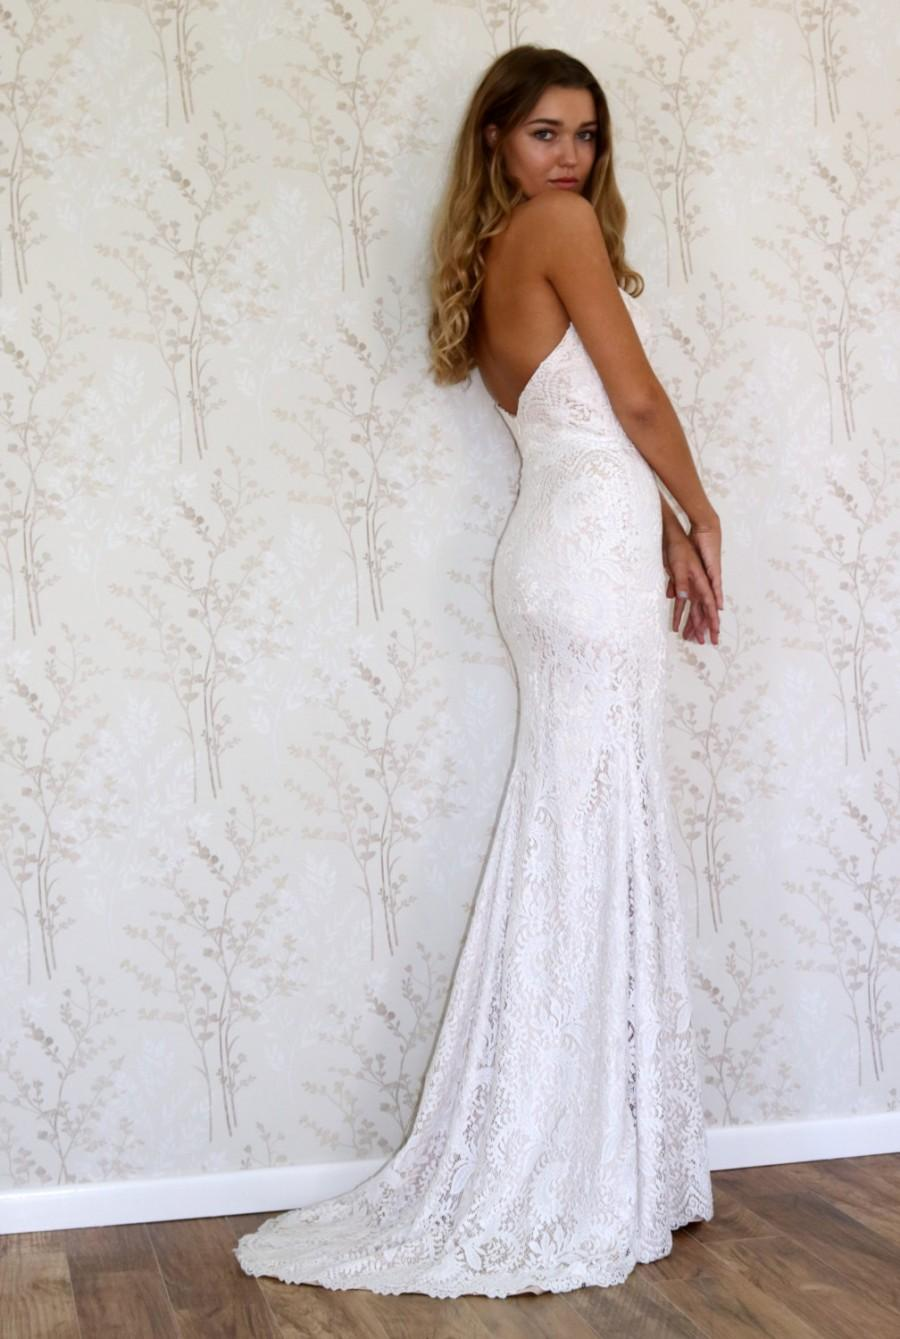 collection gowns bohemian style wedding dress ethereal Wedding Dresses silk wedding dress bohemian style